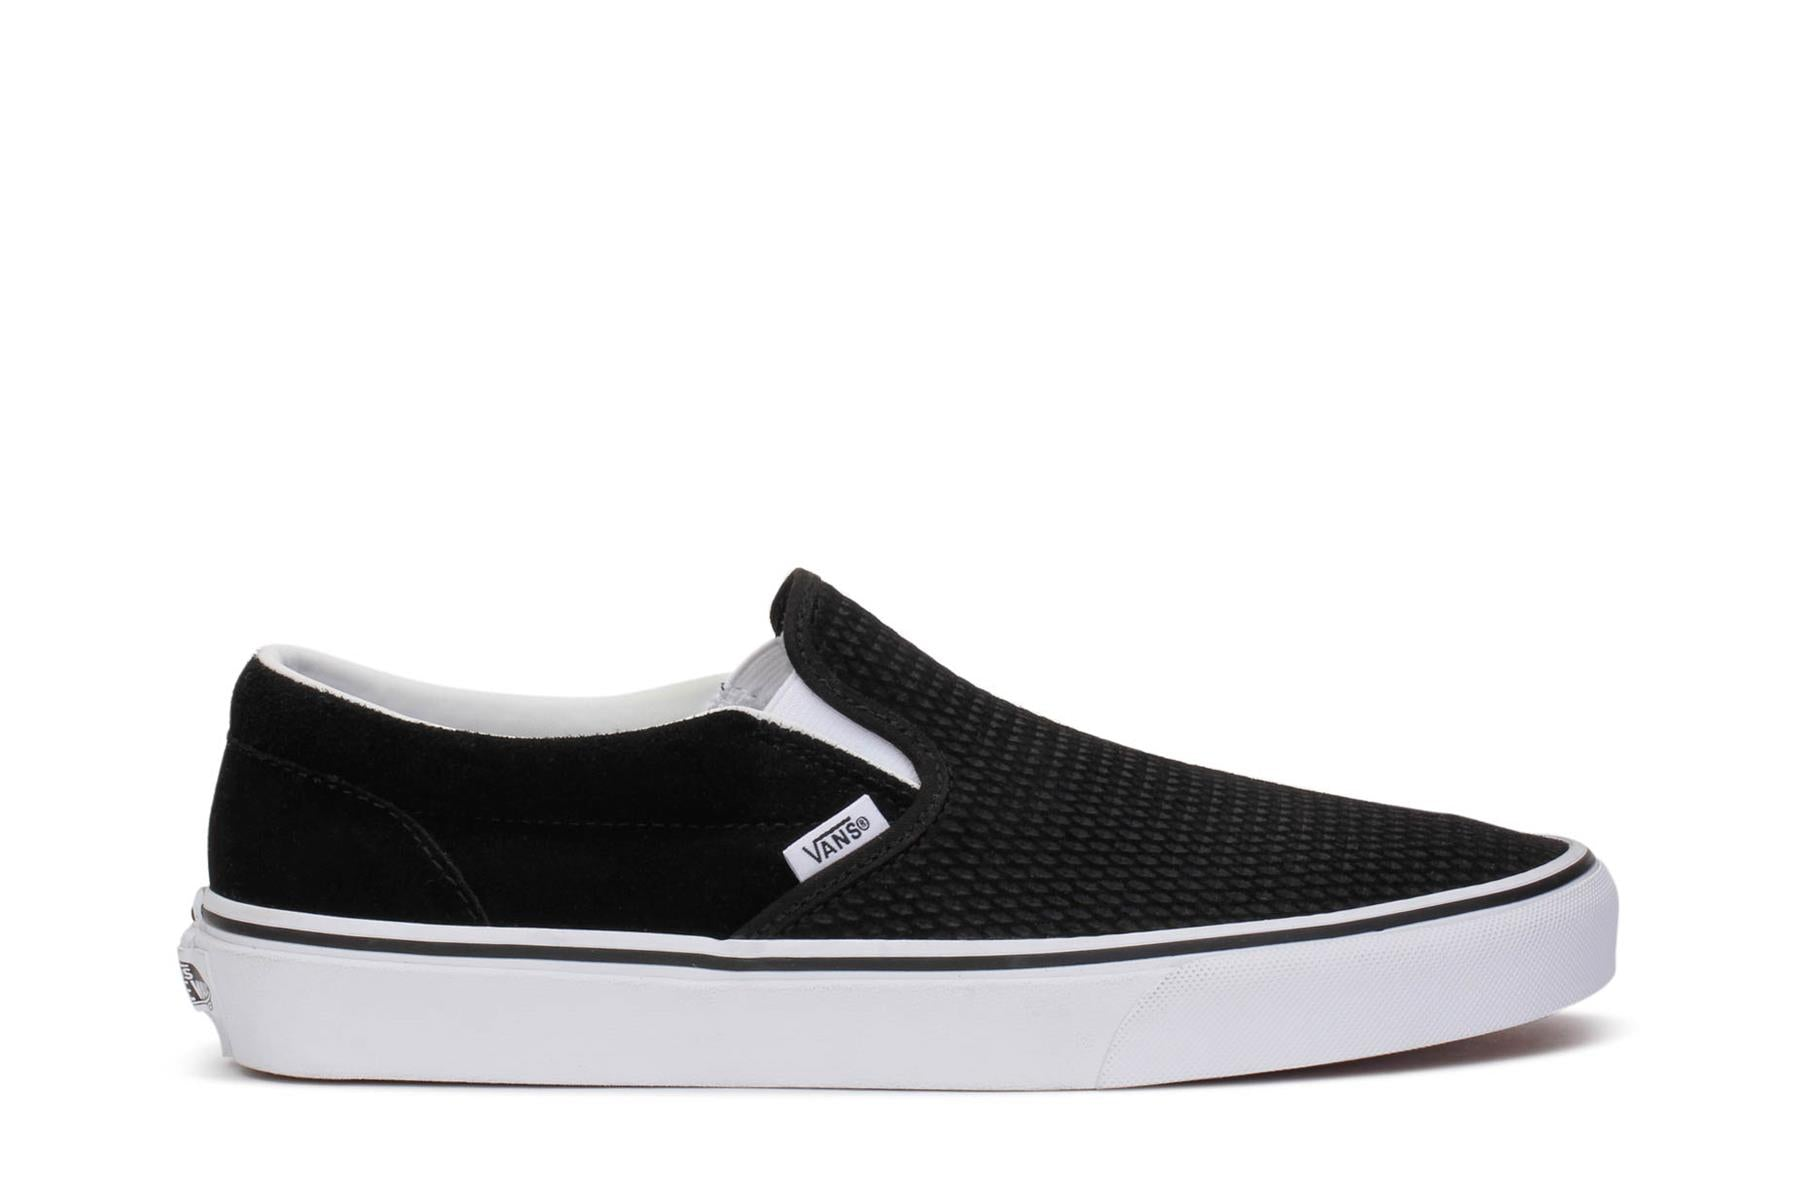 vans-mens-sneakers-classic-slip-on-embossed-black-suede-vn0a38f7u7e-main